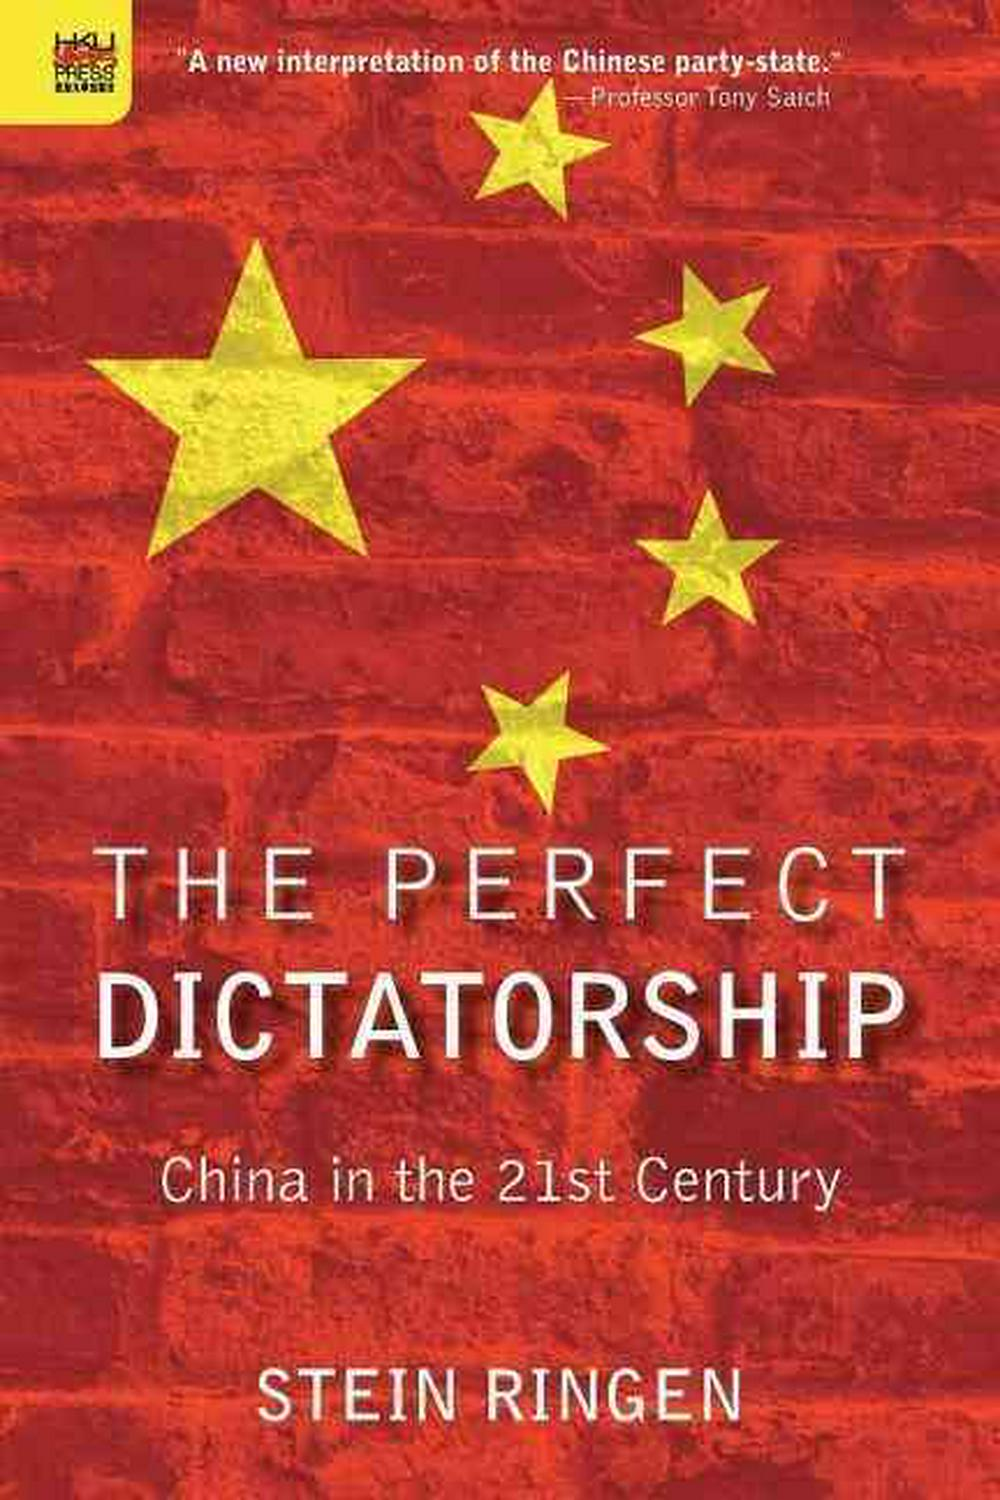 The Perfect Dictatorship: China in the 21st Century by Stein Ringen, ISBN: 9789888208944